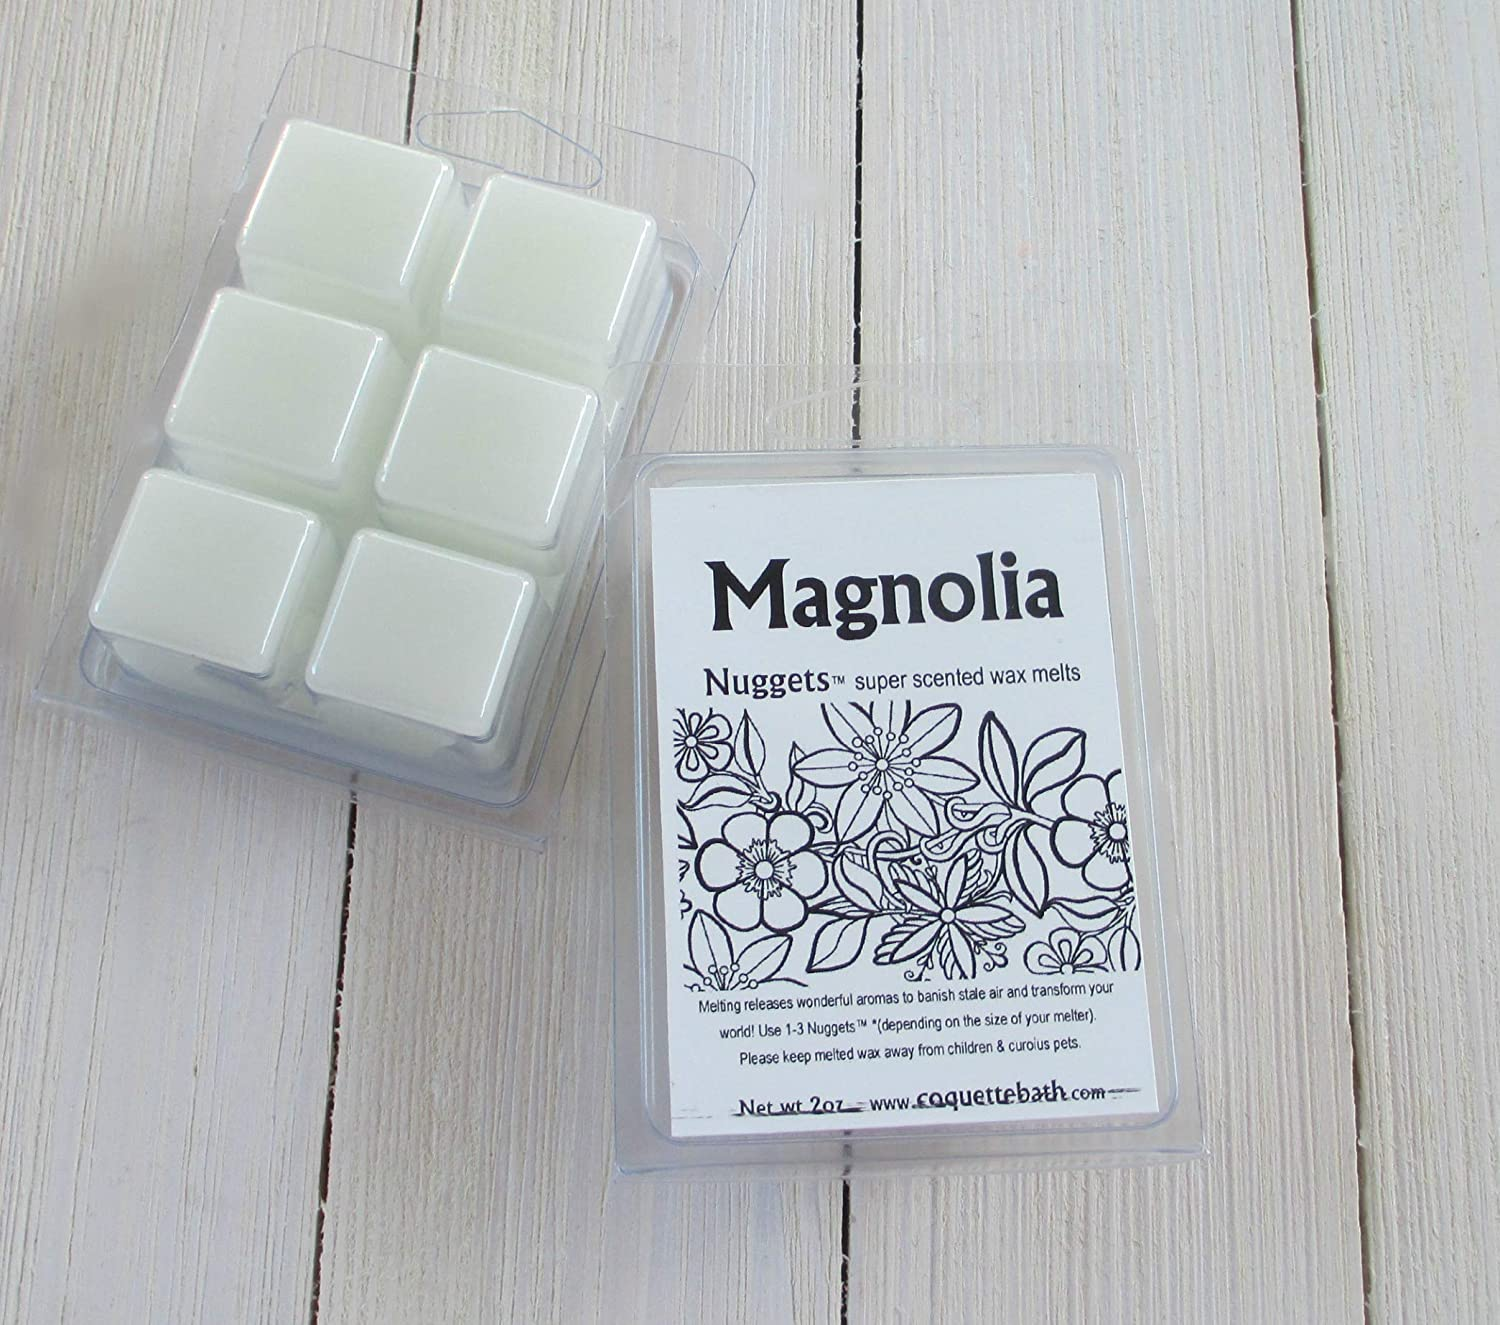 Magnolia wax melts, 2 package Deal, classic sweet floral fragance